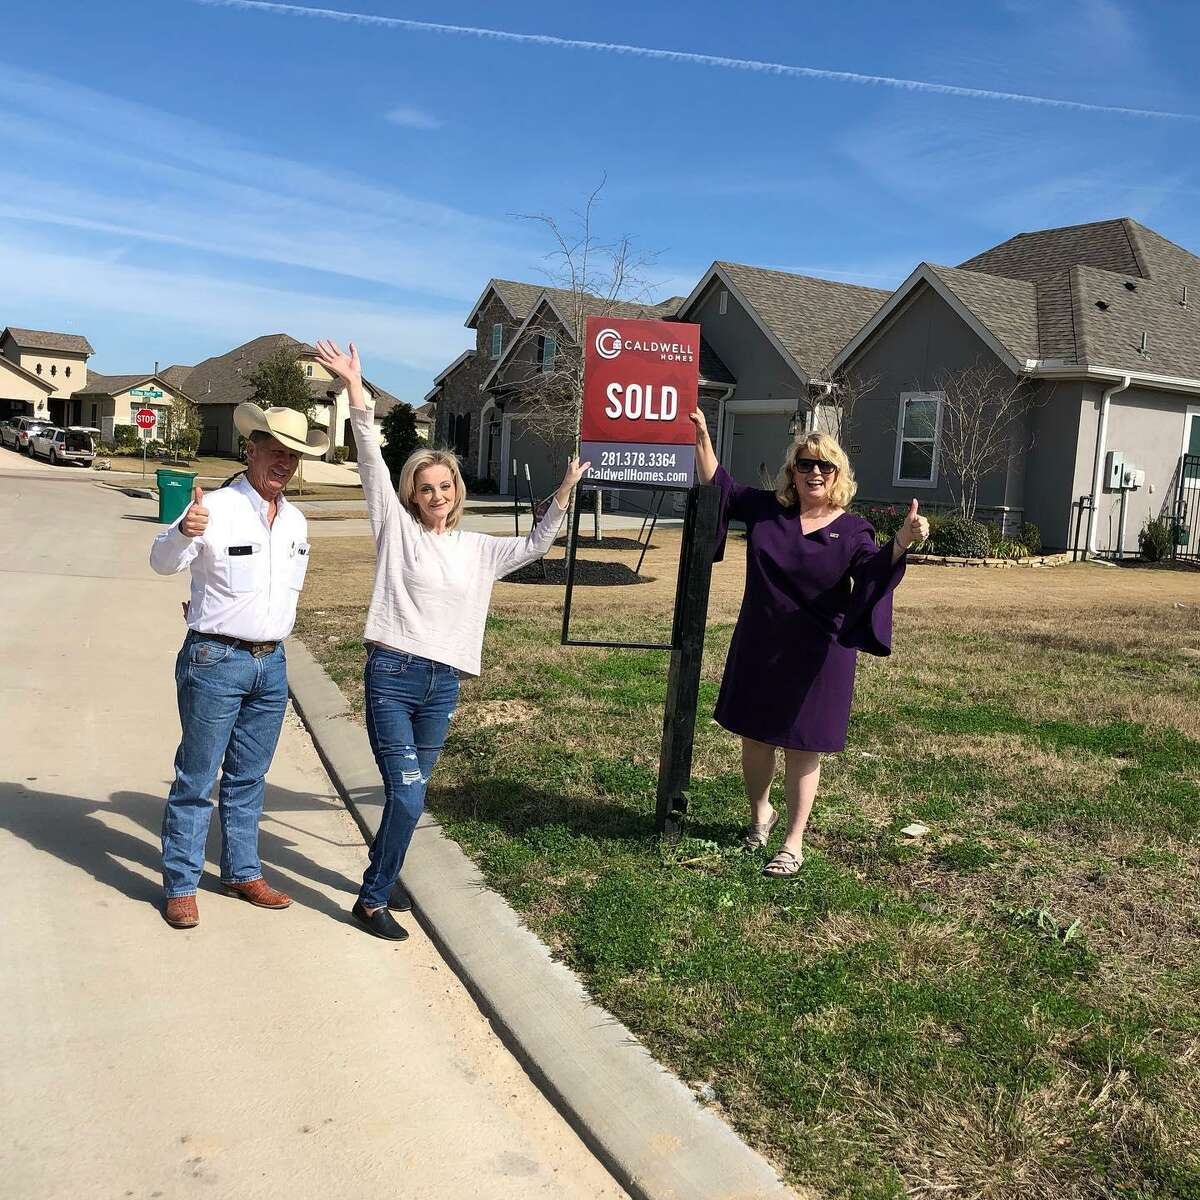 SOLD! The lot has been purchased and construction is set to begin on a new home for Cpl. Sue Downs. The soldier lost both of her legs due to an improvised explosive device (IED) that nearly claimed her life. HelpingAHero.org has awarded her a modified home in the Cypress area.